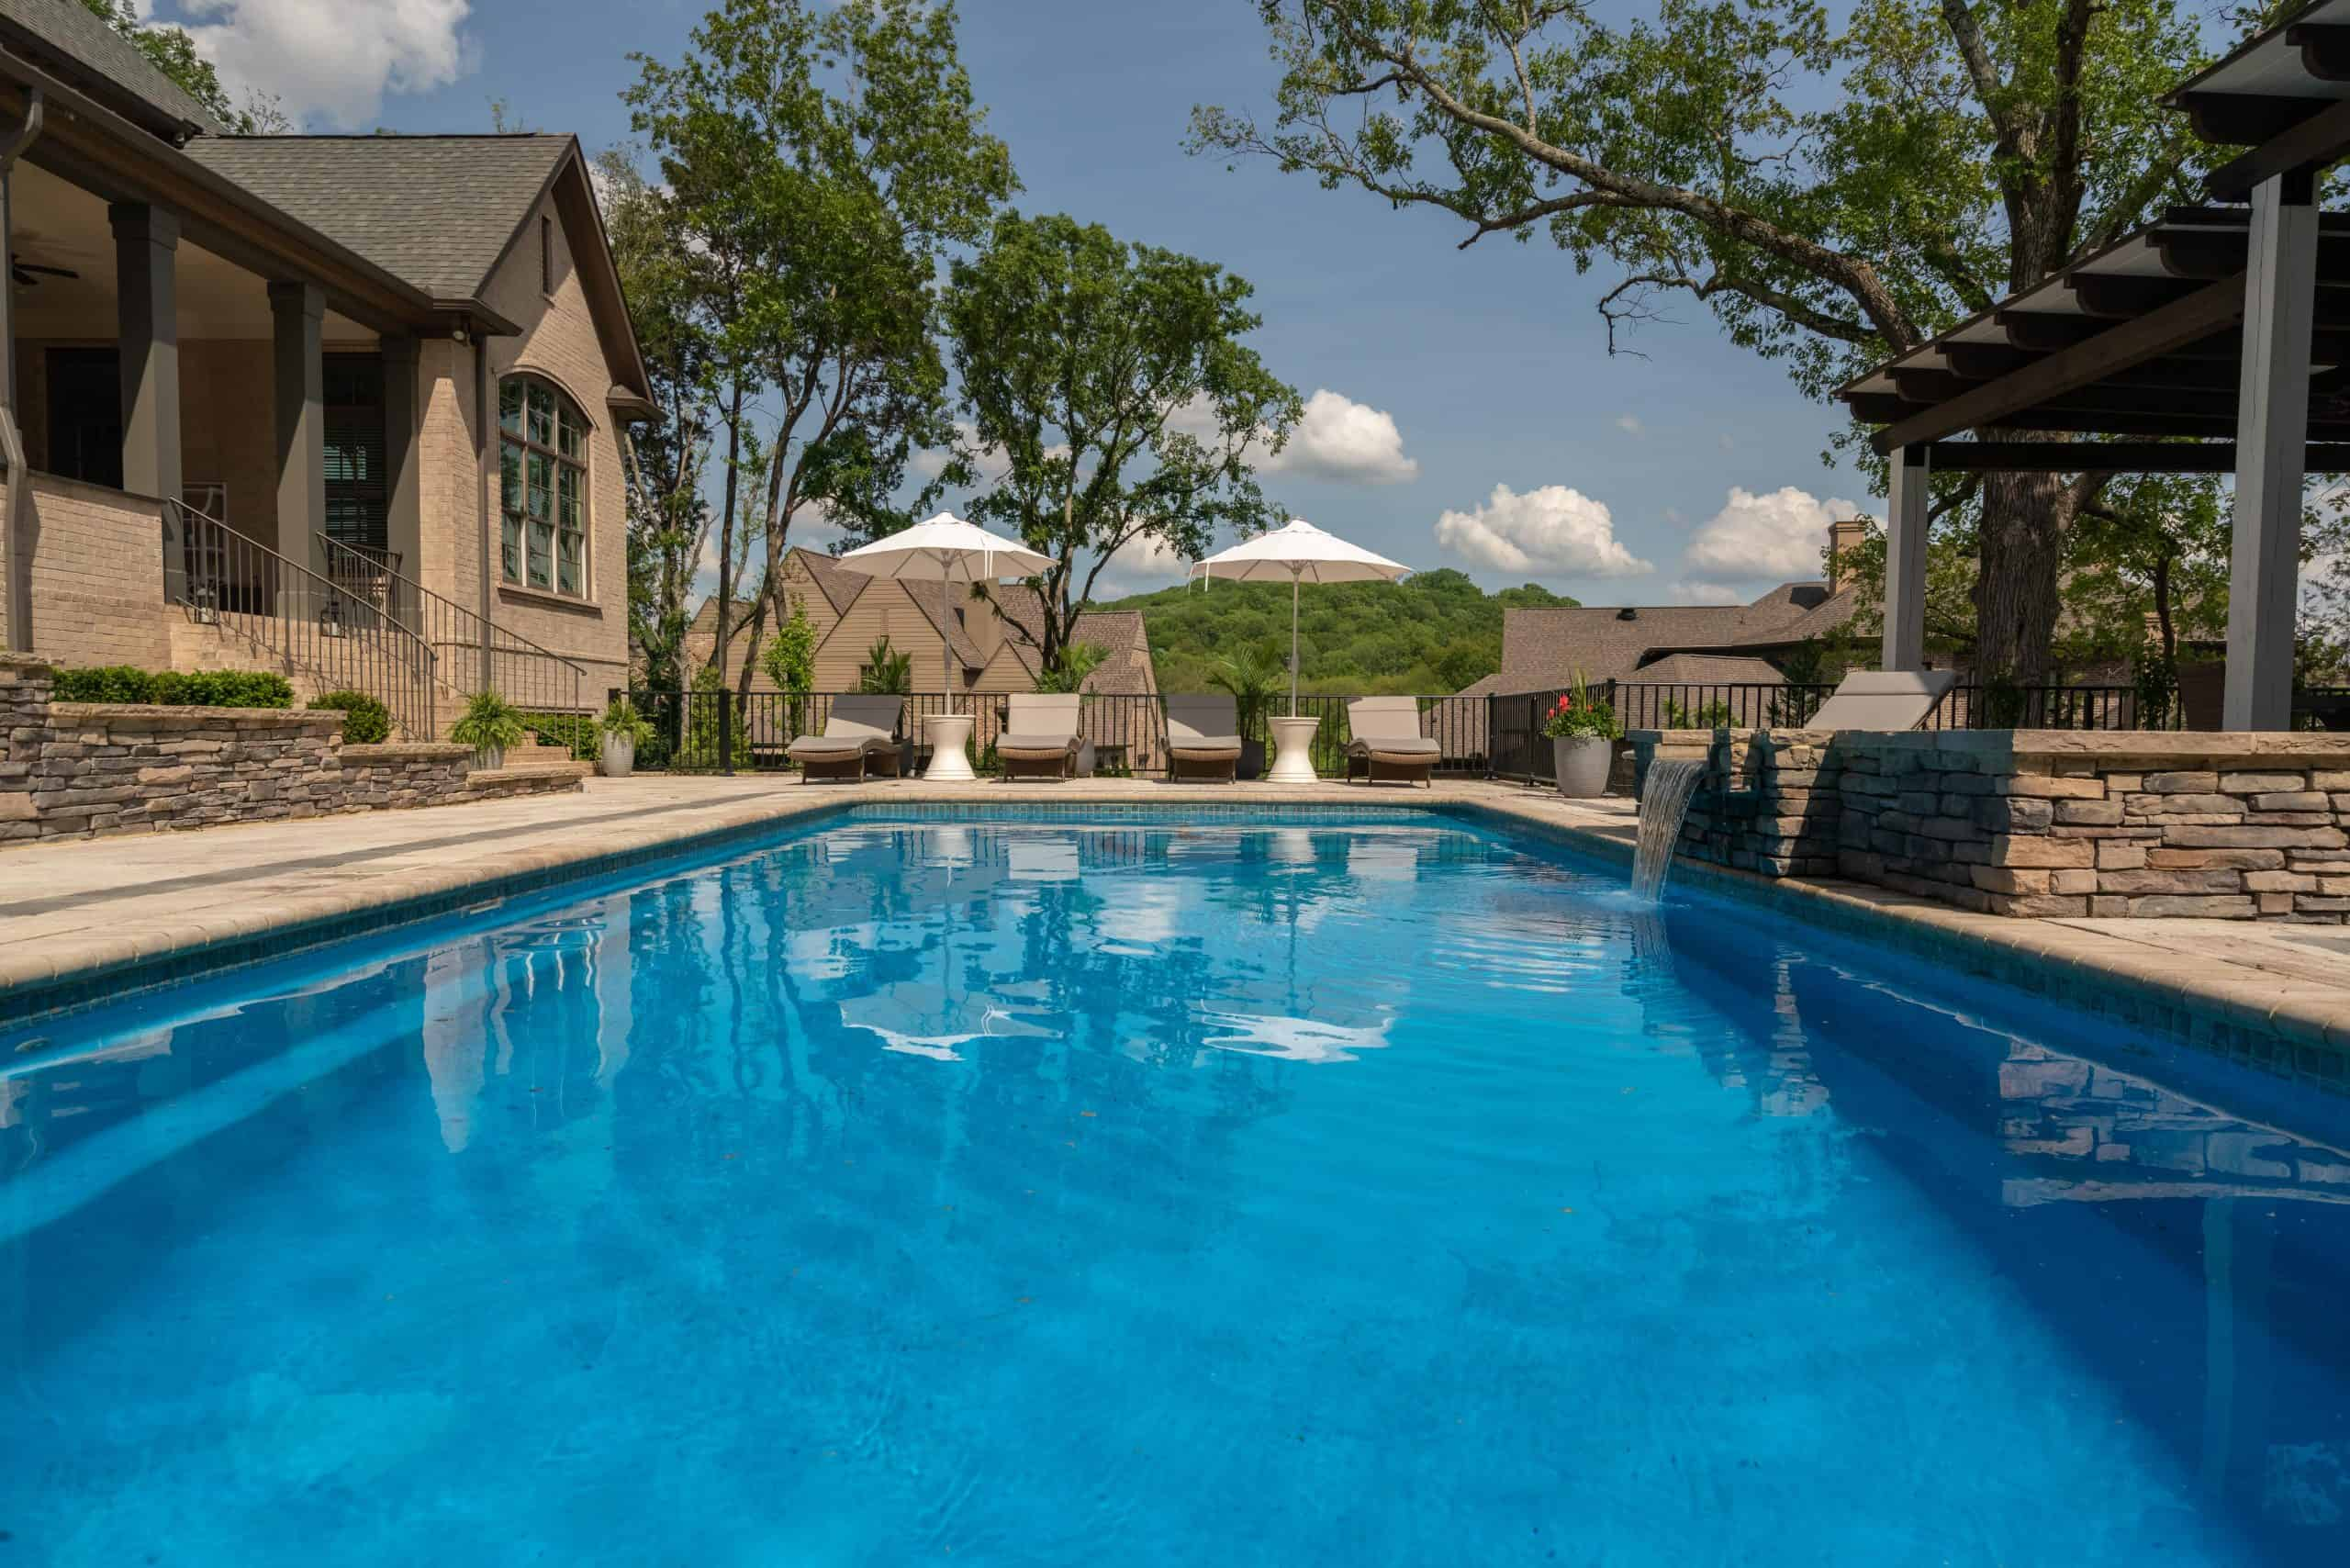 Franklin, pools, construction, Middle TN, spa with running water features